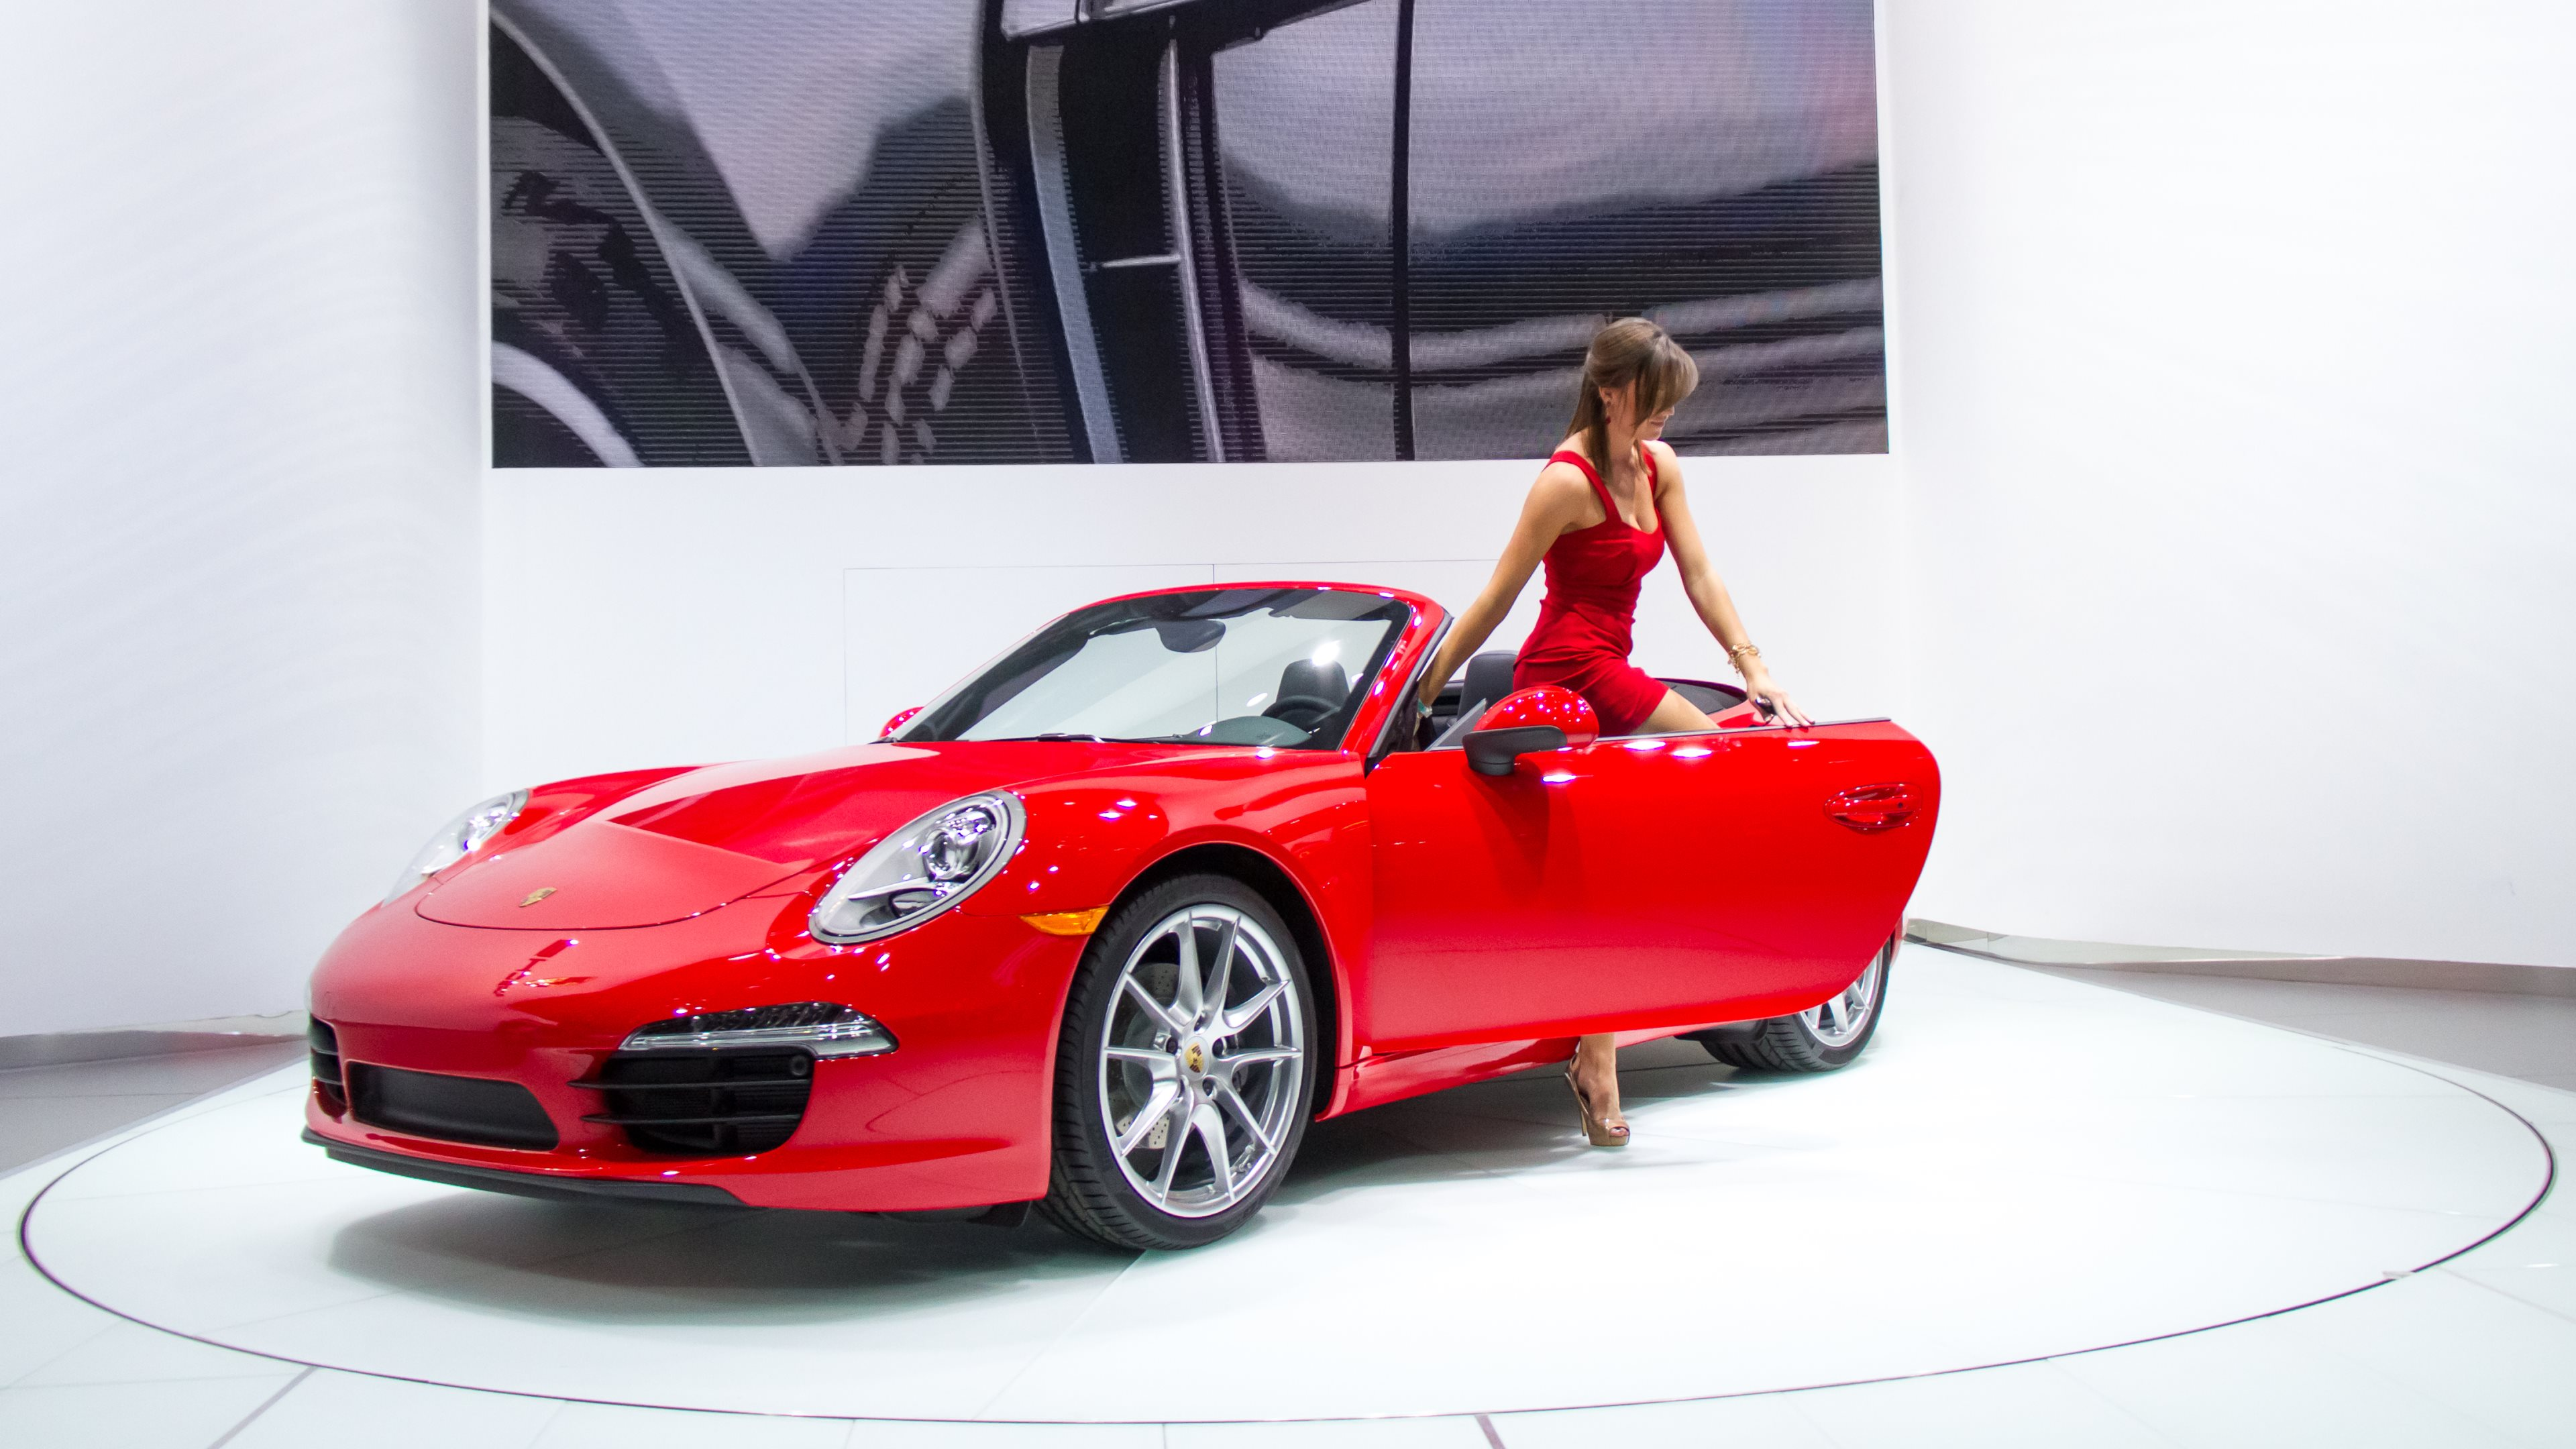 1 Red Porsche Hd Wallpapers Background Images